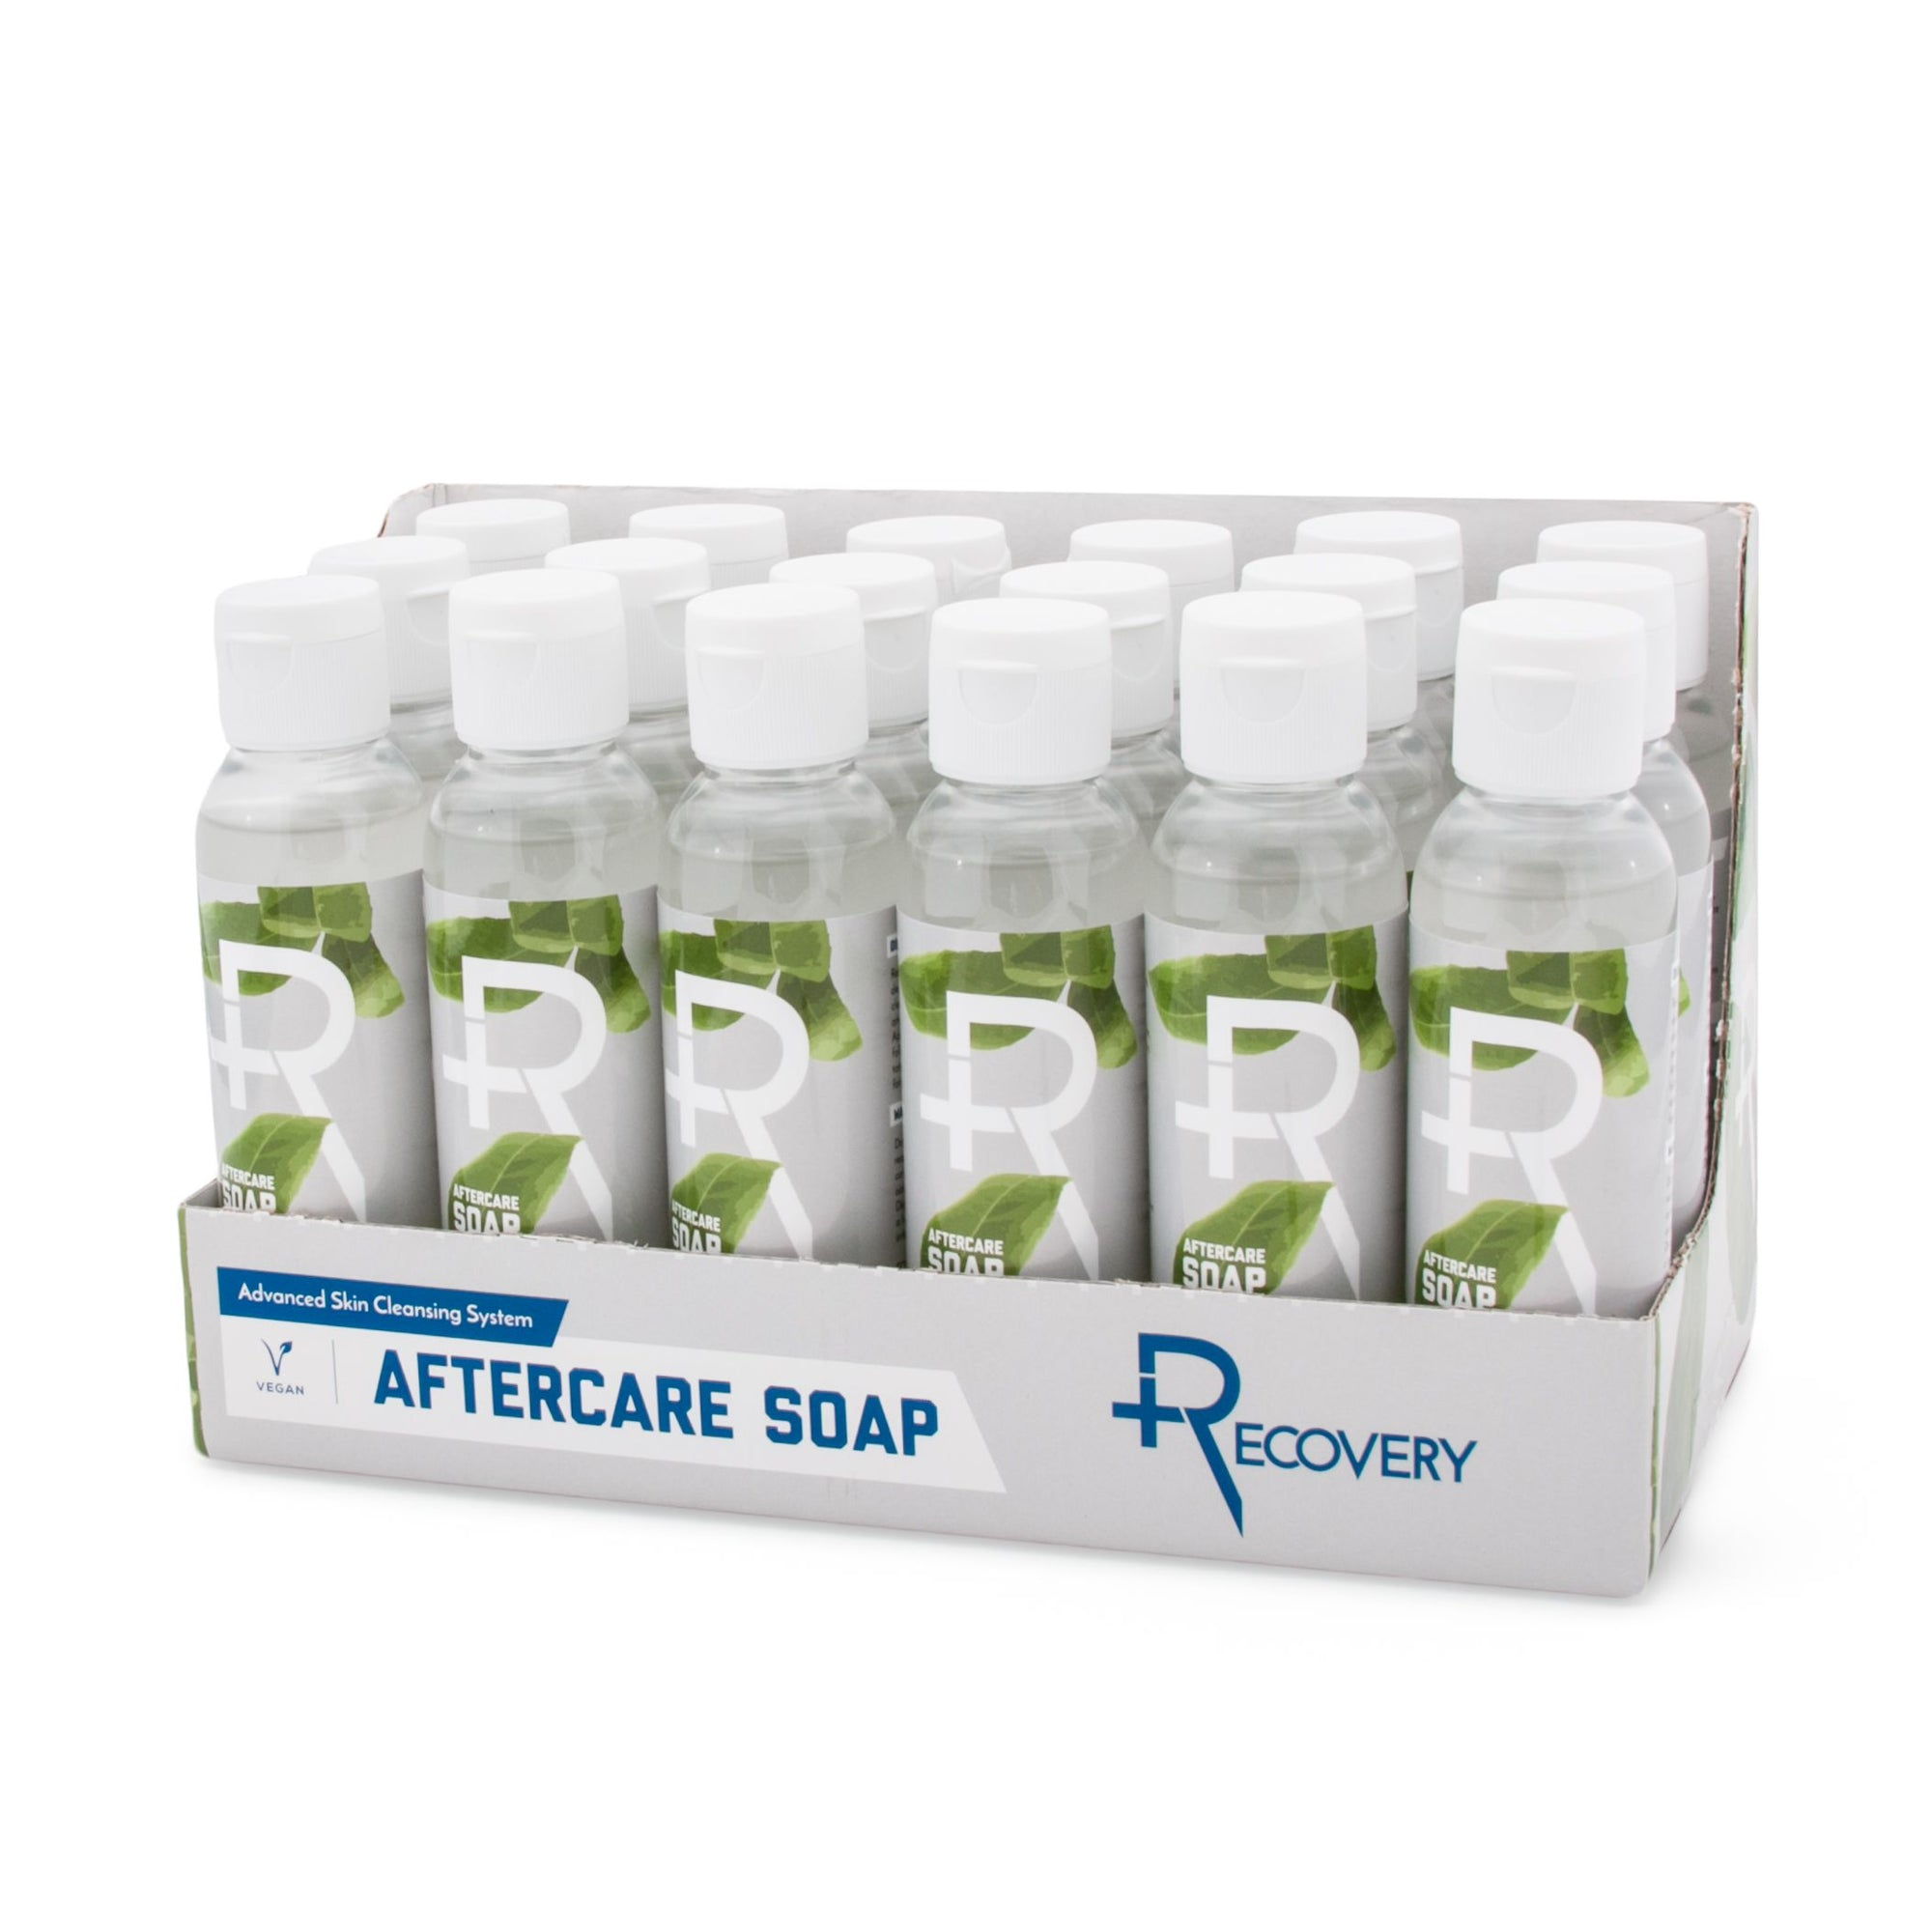 Recovery After Care Soap